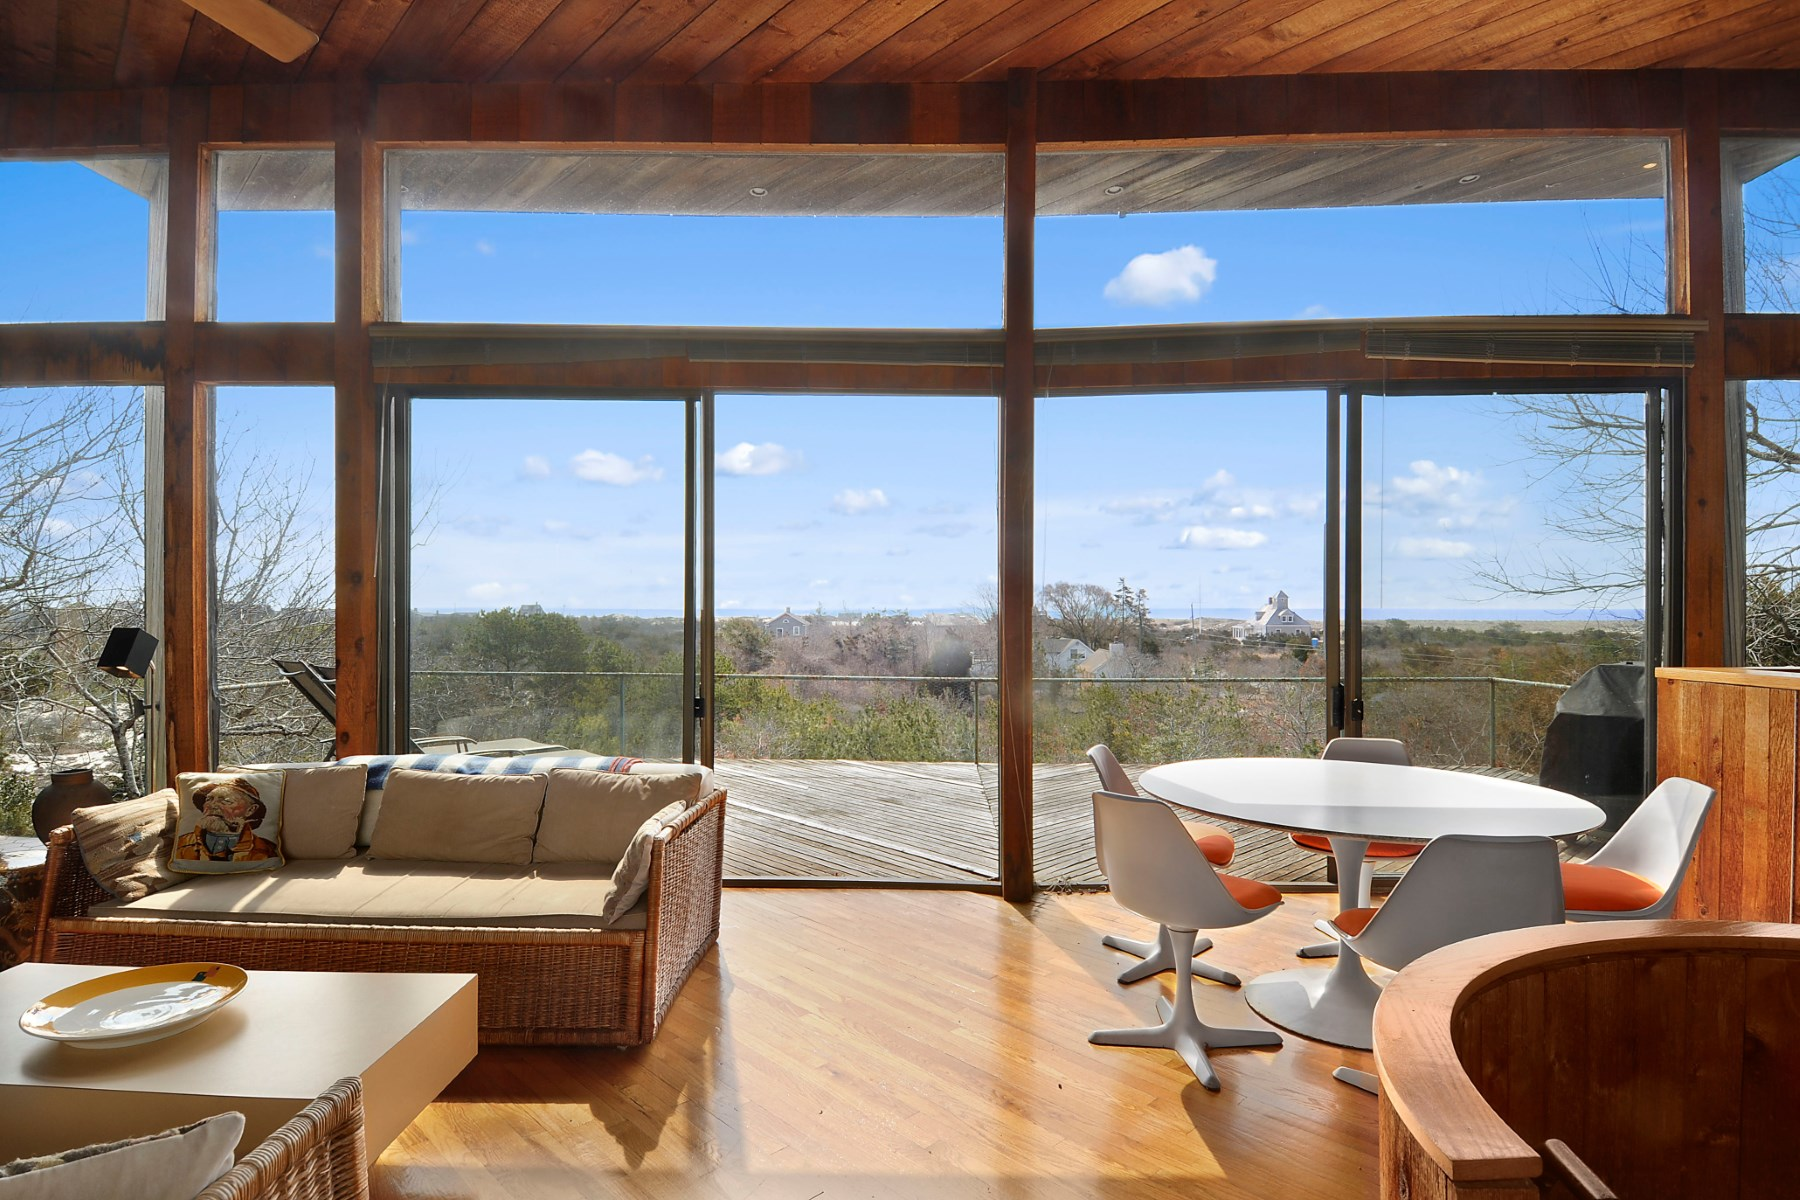 Single Family Home for Sale at Vintage Modern with Ocean Views Amagansett, New York 11930 United States